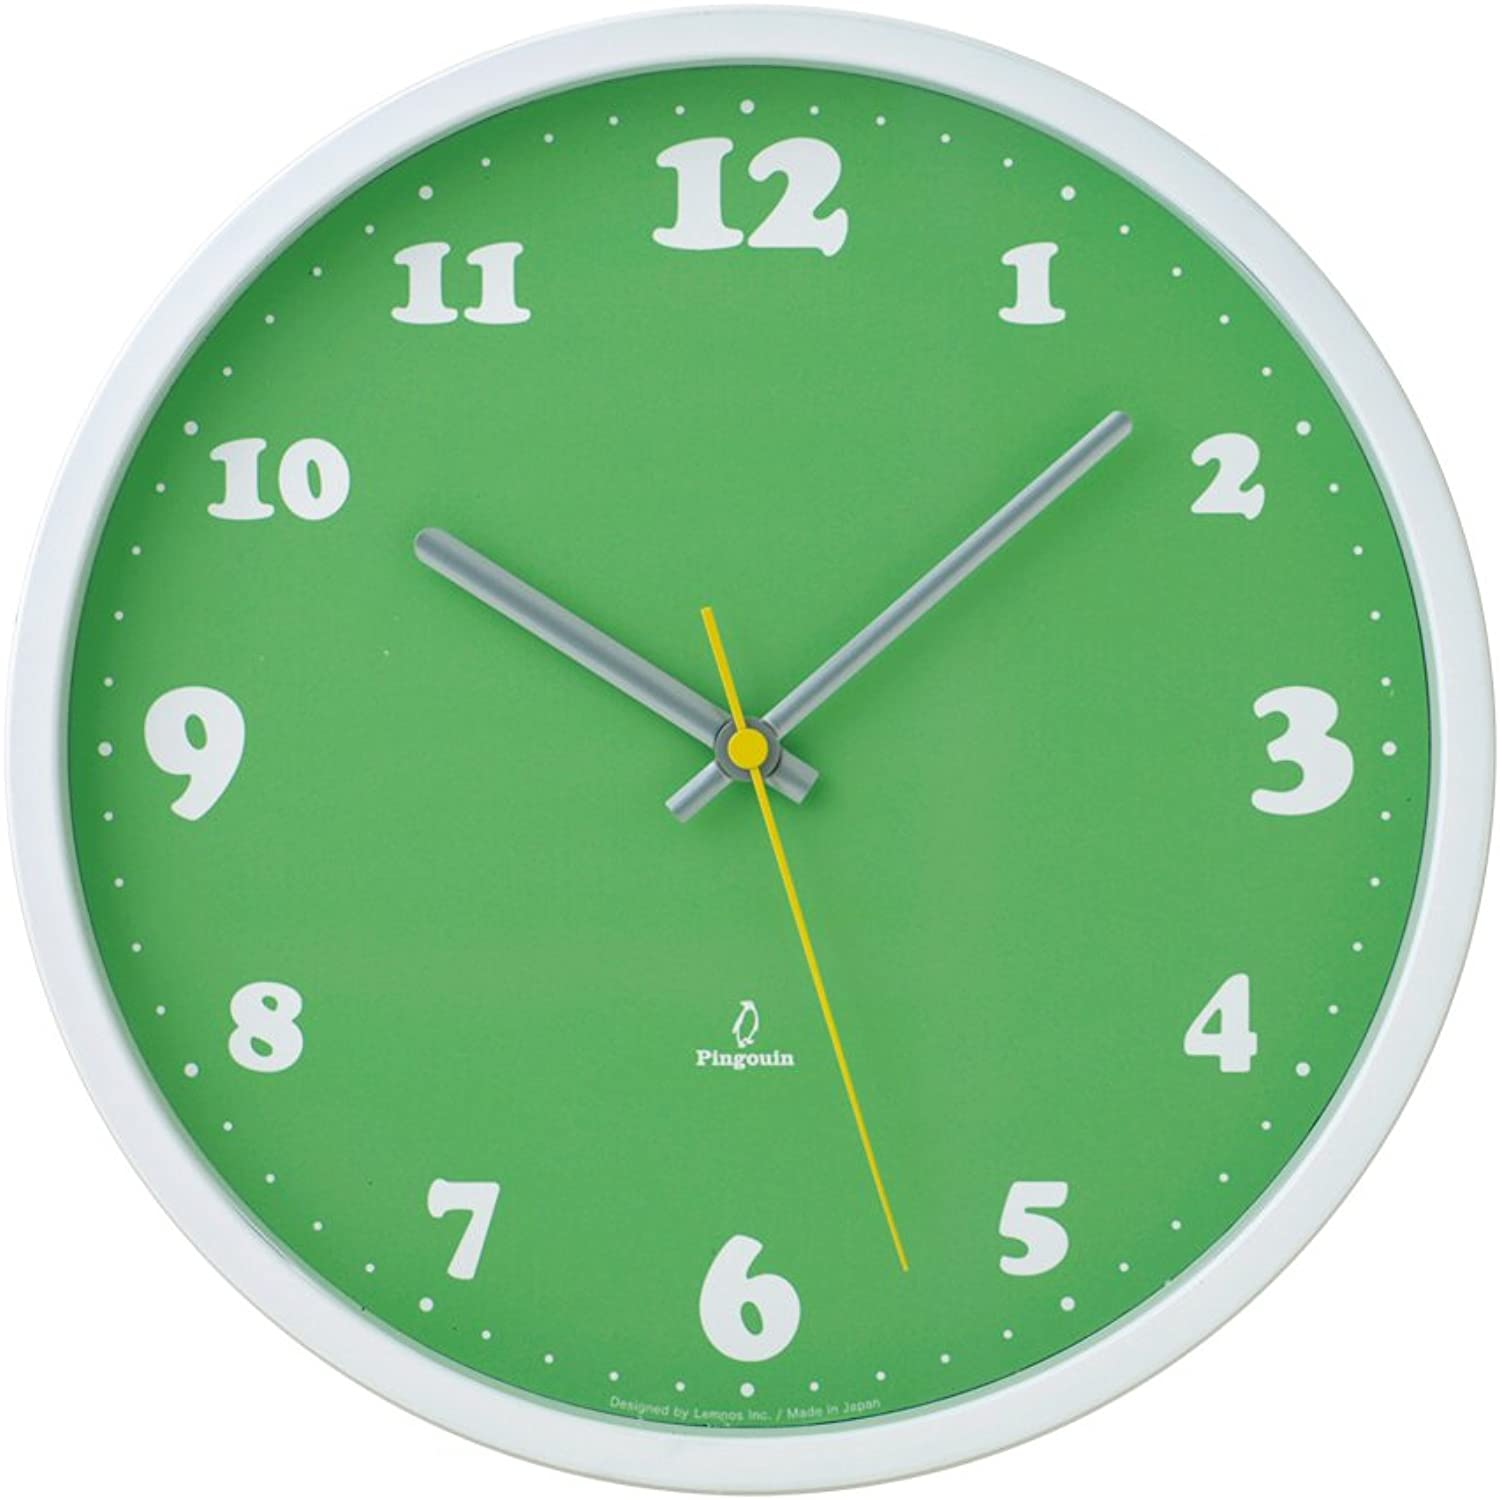 Lemnos Daily clock Green PC0907 GN by Lemnos